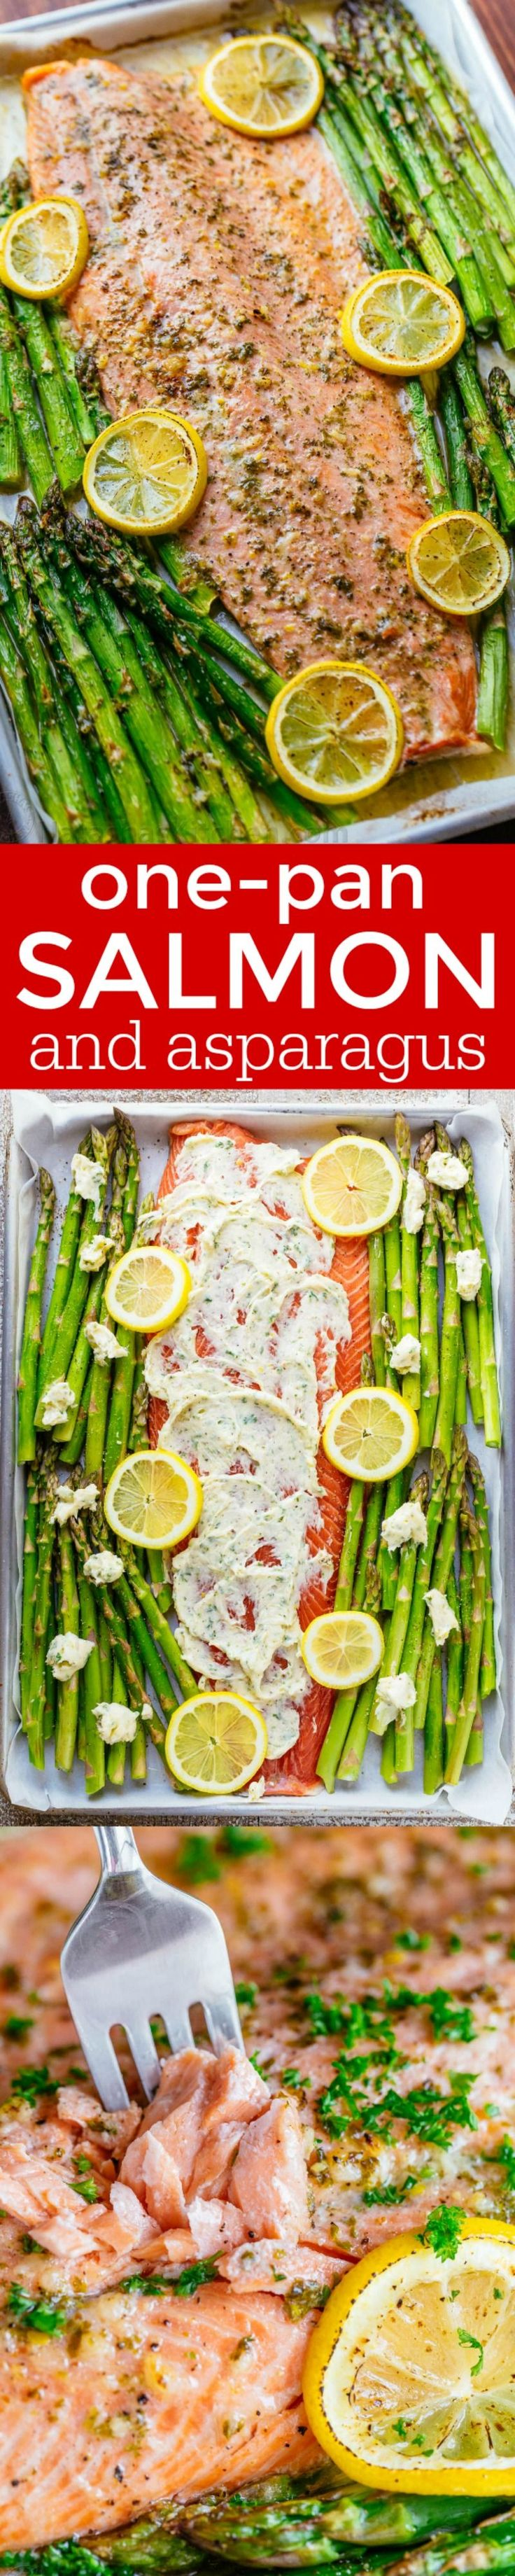 One Pan Salmon and Asparagus with Garlic Herb Butter is quick and easy (25 minute meal). The garlic-herb butter gives this salmon and asparagus rich flavor - sponsored by Salmon Council | natashaskitc